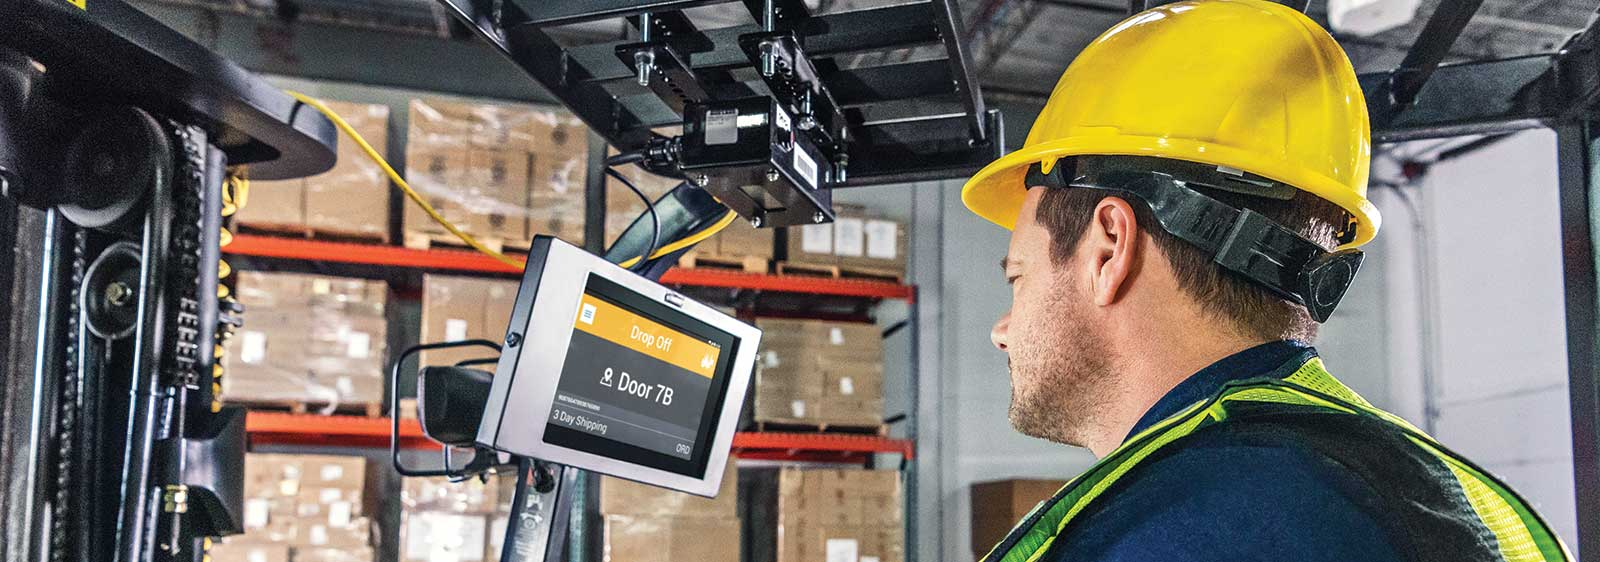 How does a Warehouse Management System operate?